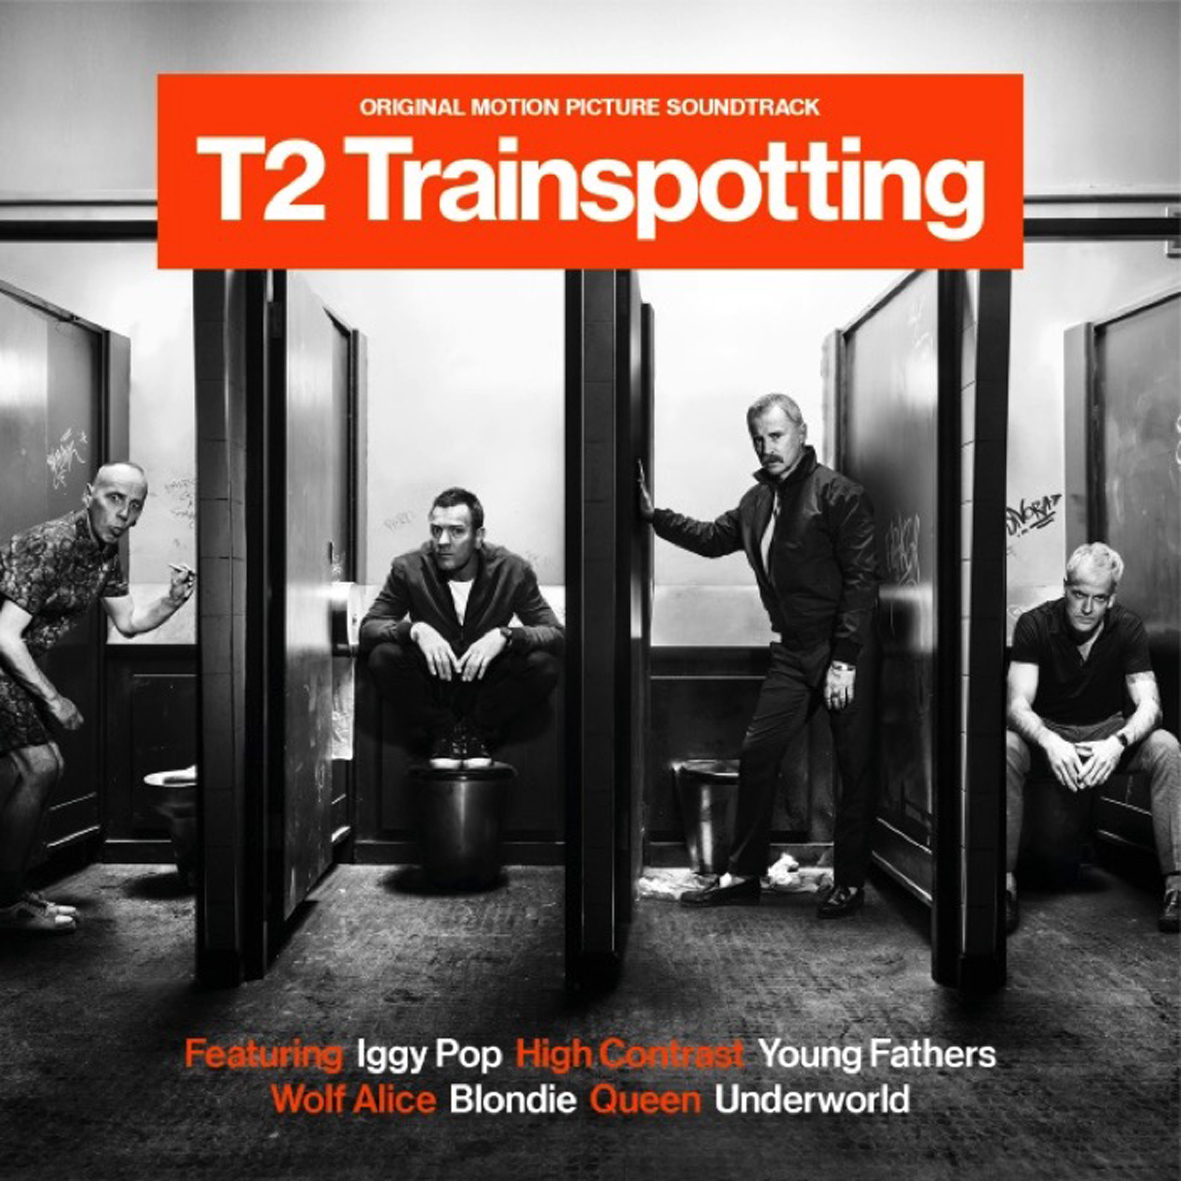 T2 Trainspotting - soundtrack